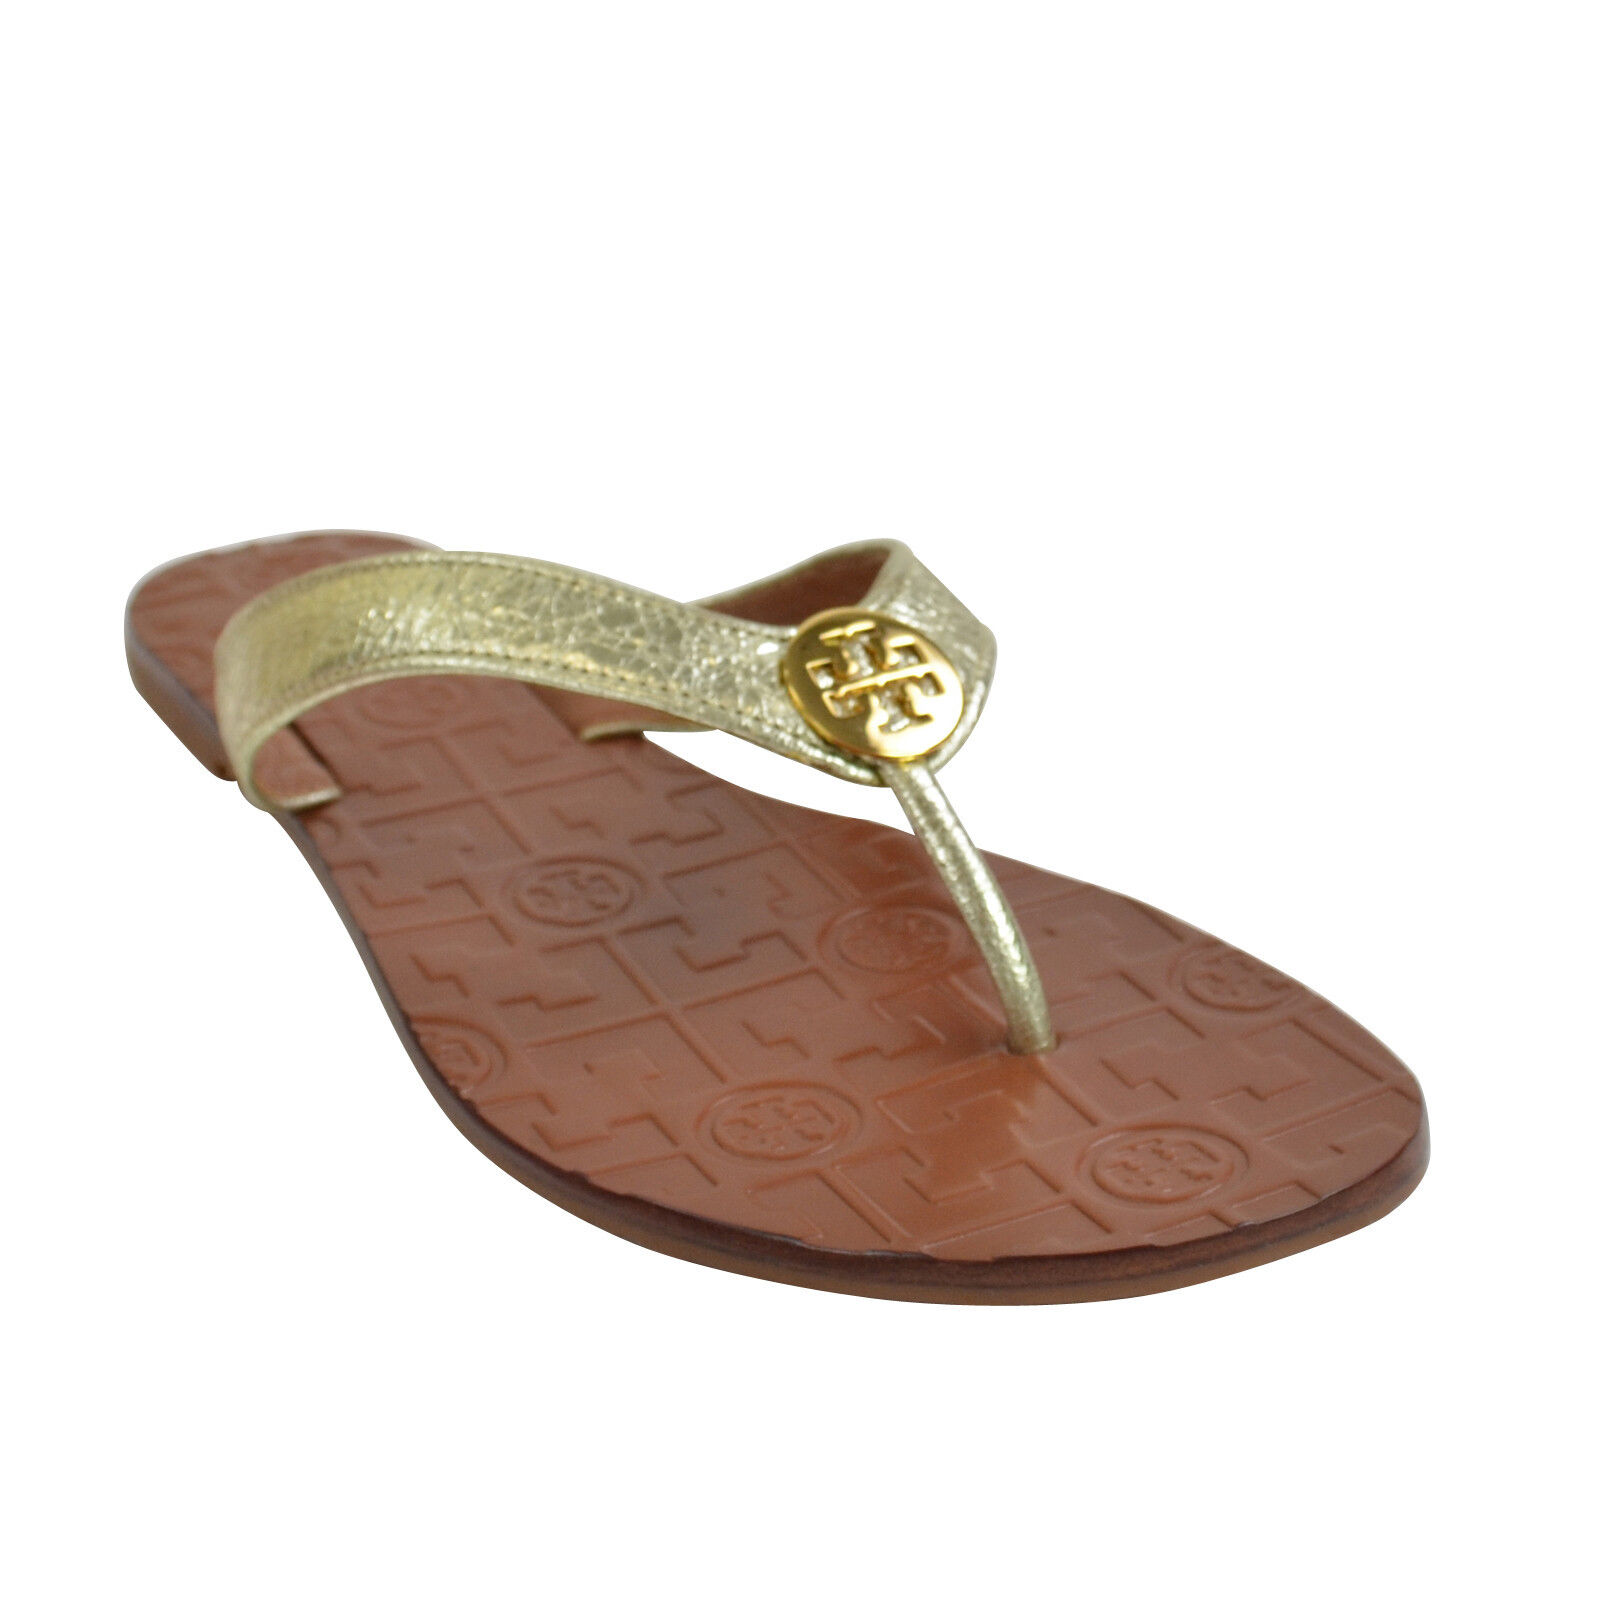 1a02fda24 NIB Tory Burch THORA Reverse Metallic Leather Thong Sandals in Spark Gold  Size 8